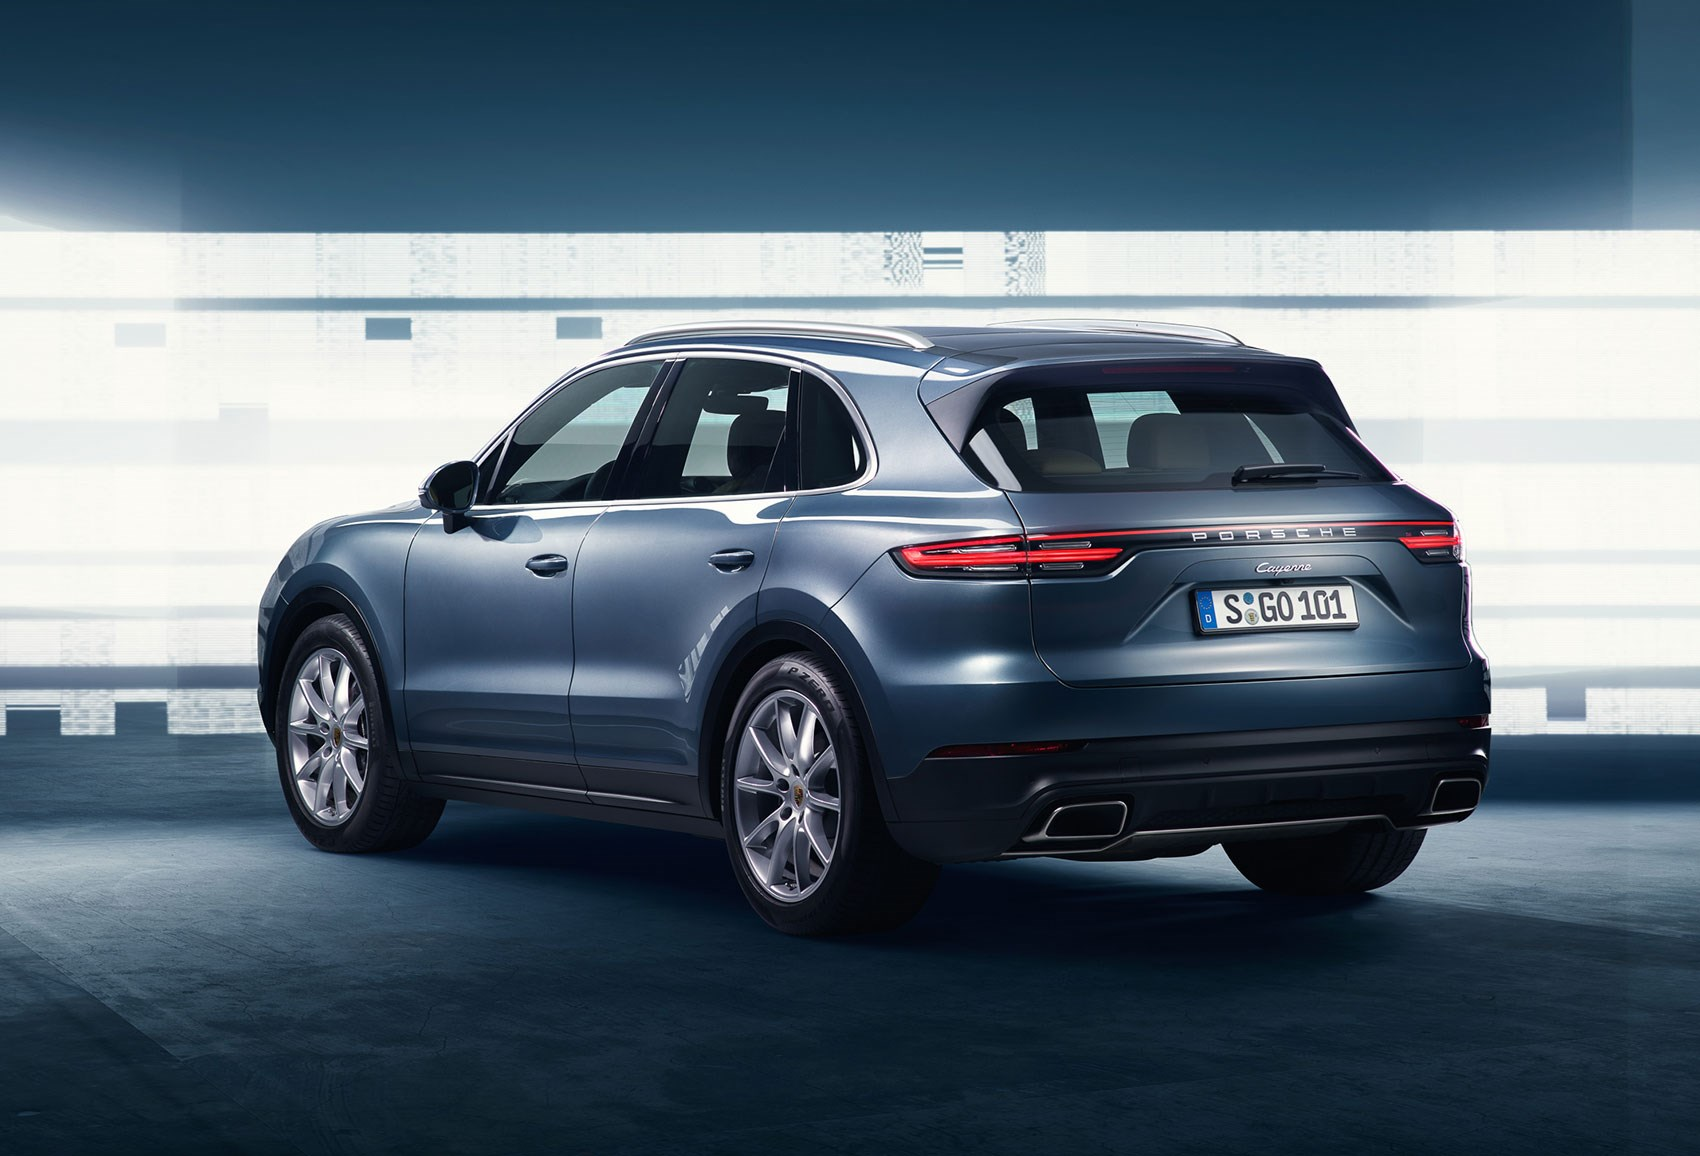 Shades Of Mini Macan From The Rear It S New Porsche Cayenne